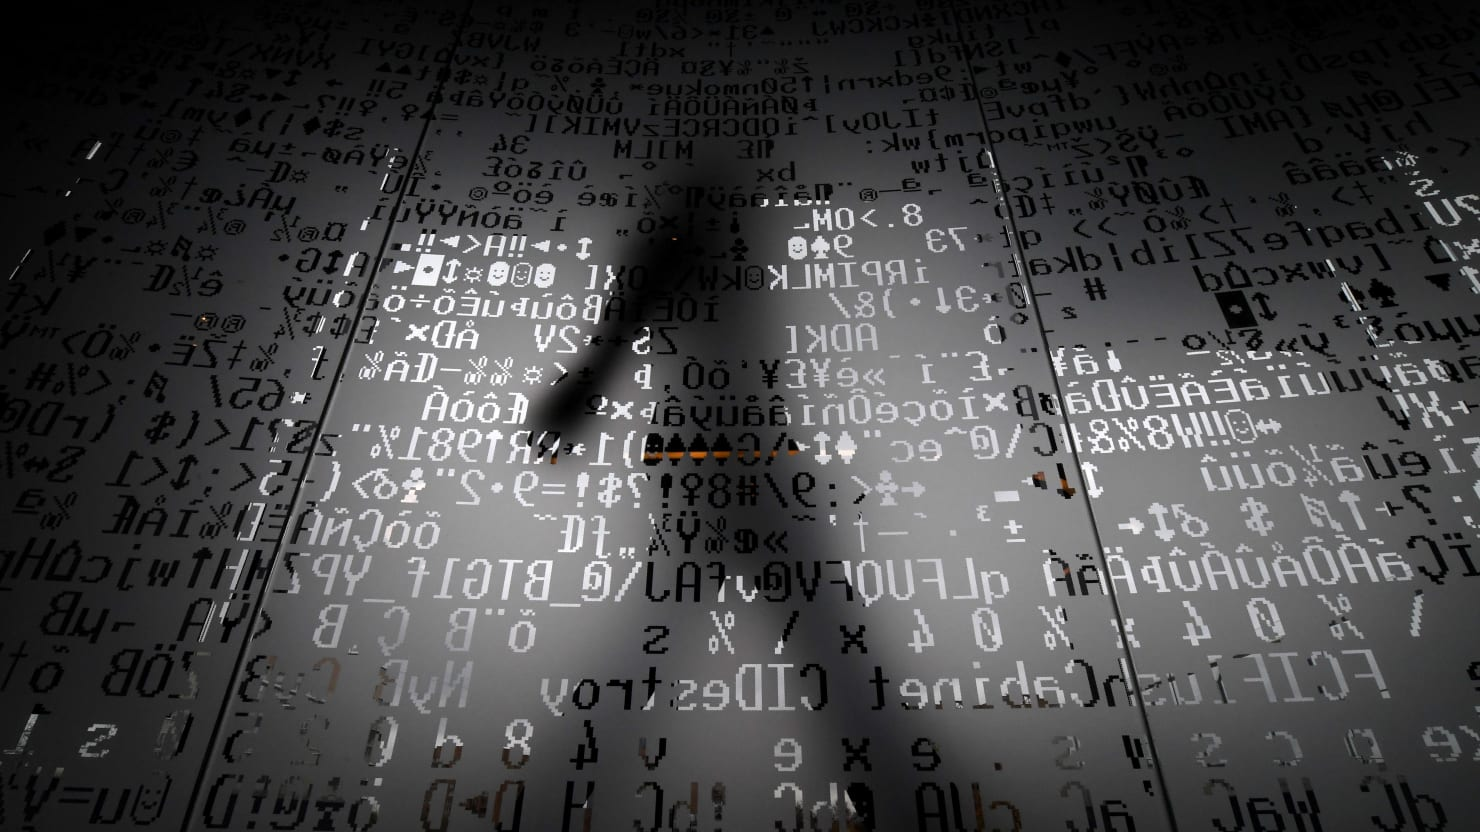 Team of Cyberspies Hacked Entire Countries' Internet Domains